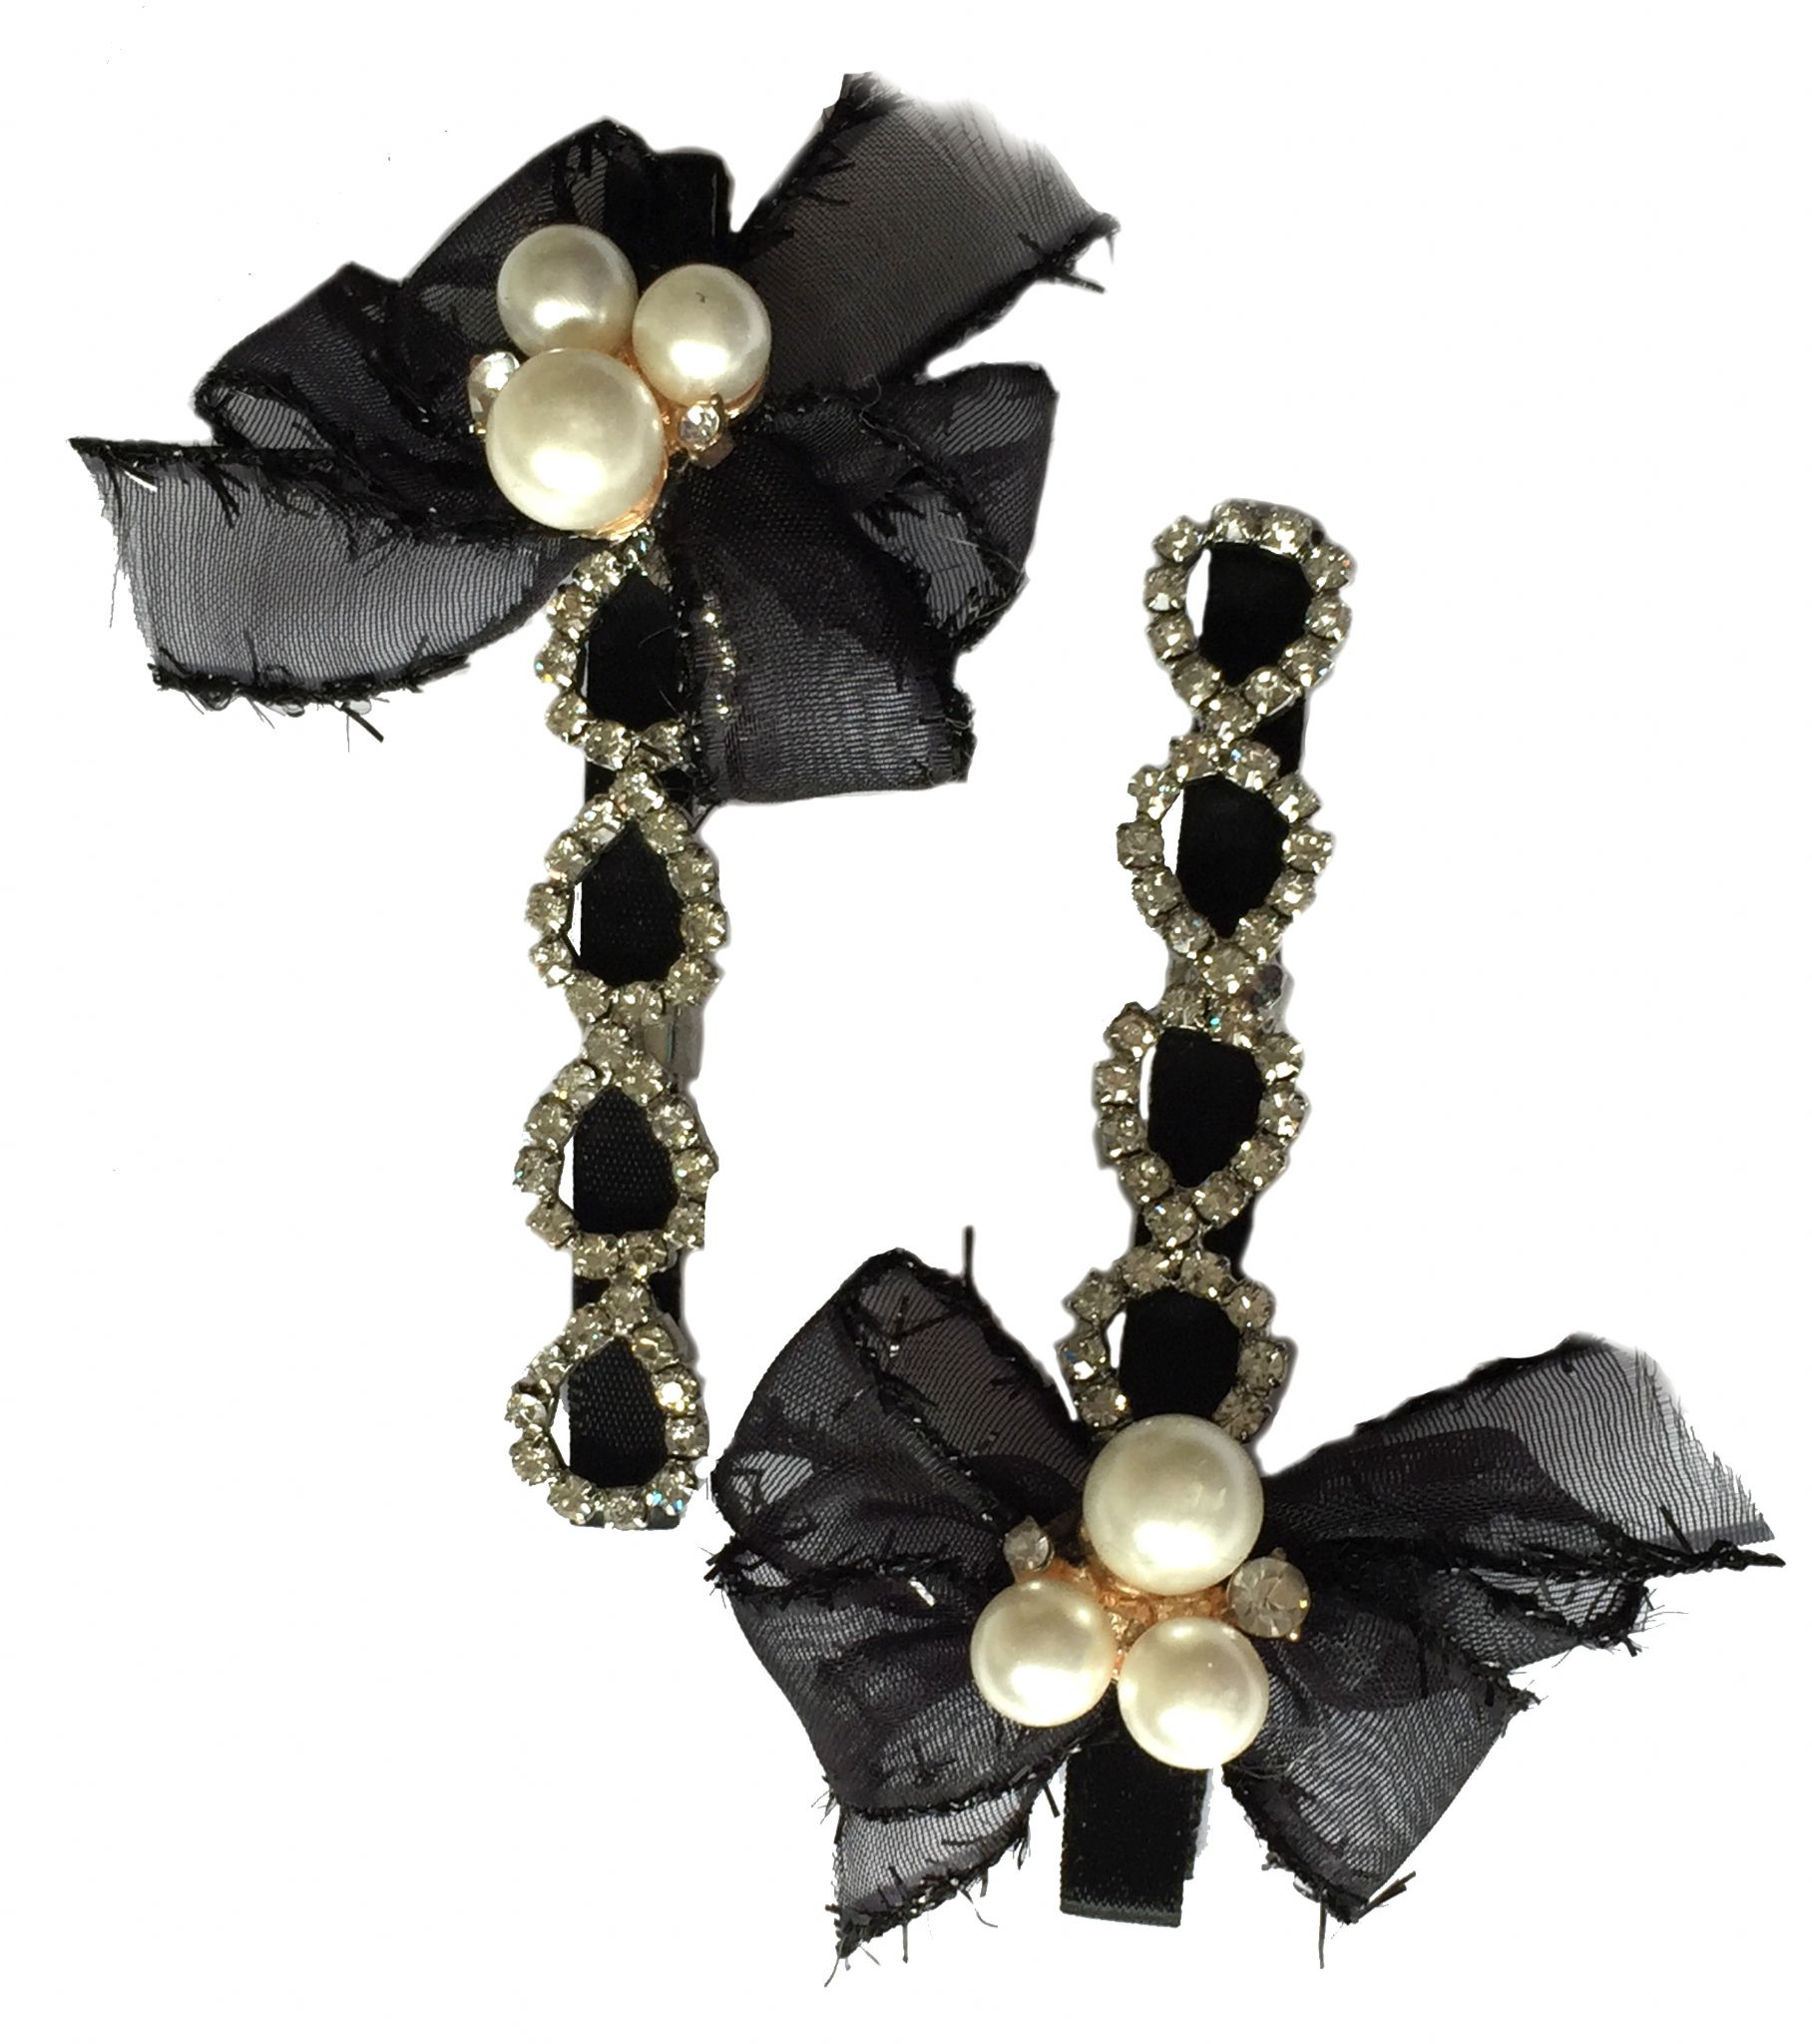 http://www.conmigolondon.co.uk/ekmps/shops/conmigo/images/1.-al0075-eye-catching-black-bow-with-pearls-and-colourful-sequin-hair-slids-2-pieces-%5B2%5D-15558-p.jpg